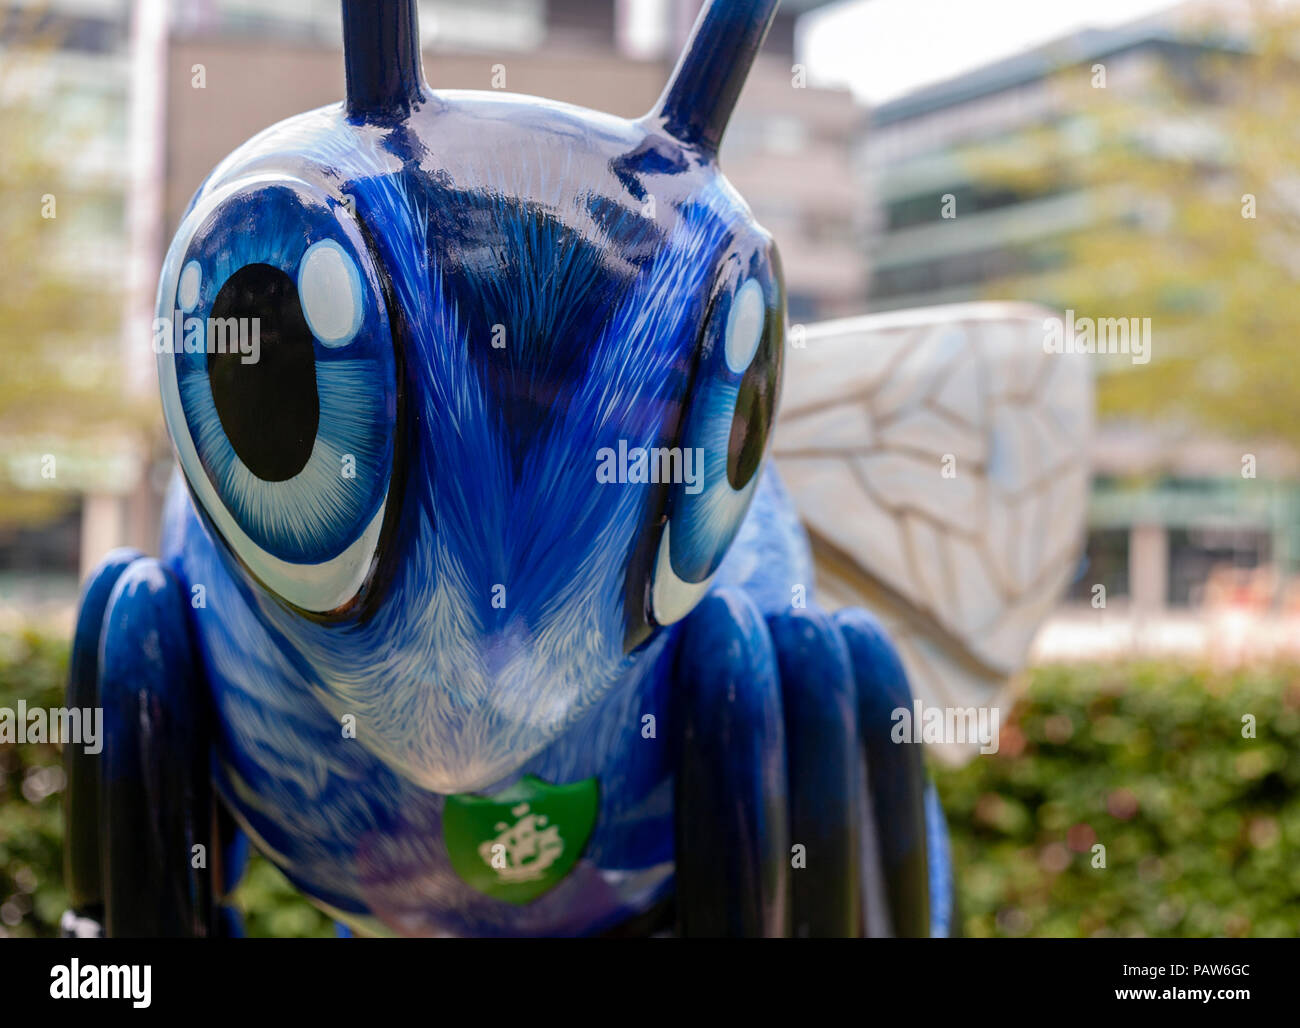 Salford Quays,Manchester, UK. 24th July 2018. Blue bee-ter is the Blue Peter bee designed and decorated by Jodie Silverman. Located near the Blue Peter garden at mediacityUK, Salford Quays, Manchester. It forms part of the Bee in the City event in support of the We Love Manchester charity Credit: Stu/Alamy Live News - Stock Image